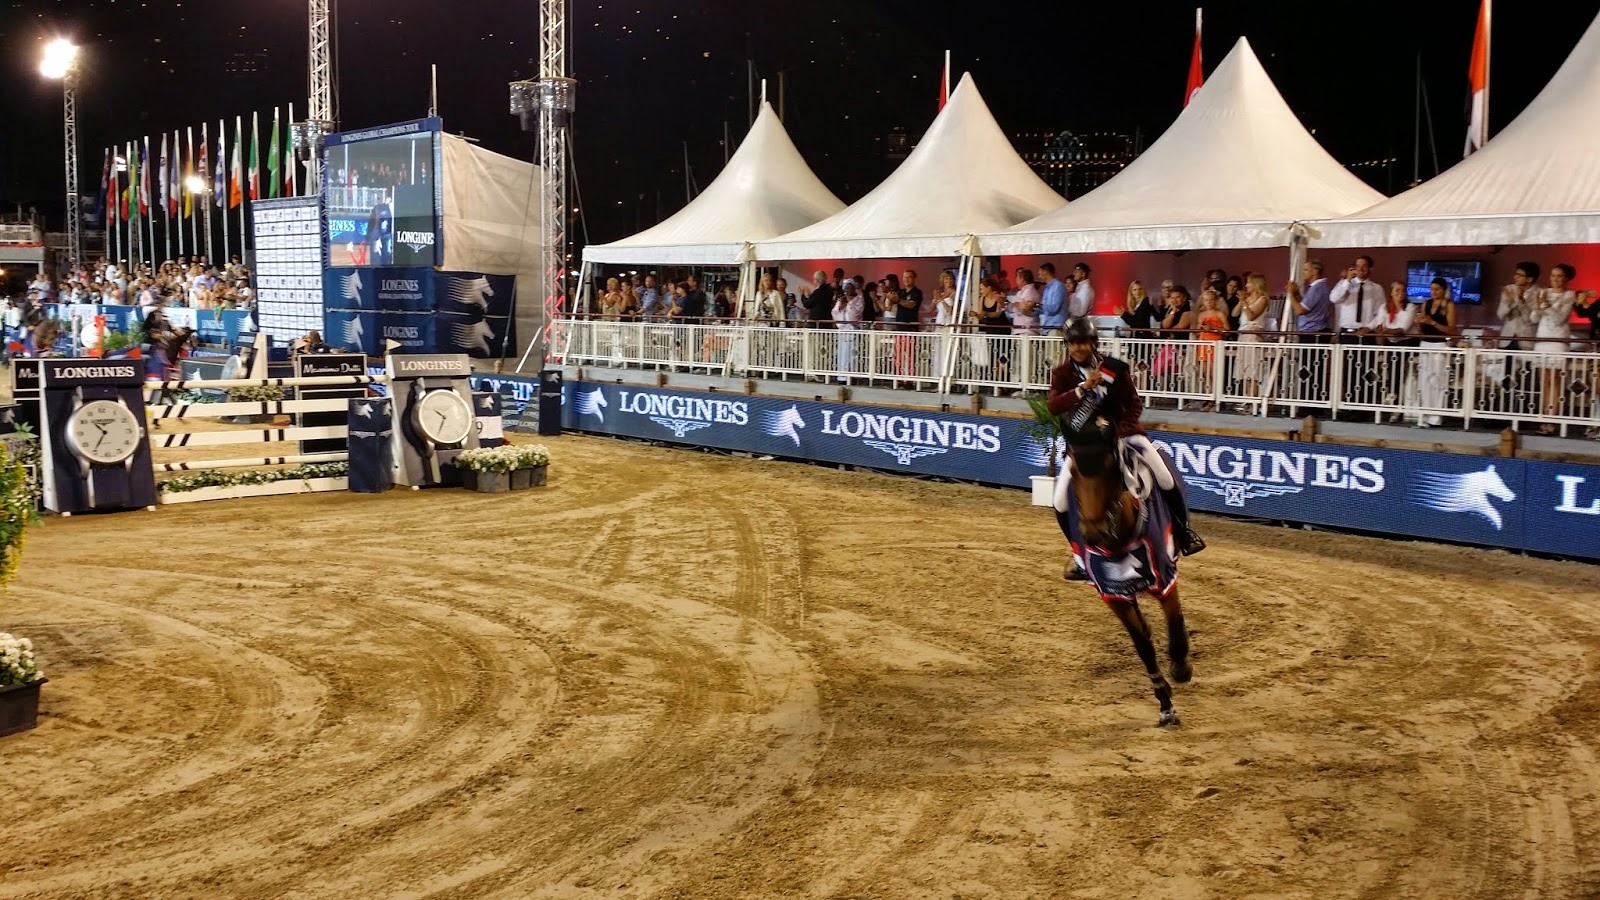 LONGINES Conquest, Global Champions Tour 2014 Montecarlo, Mohammed Bassem Hassan